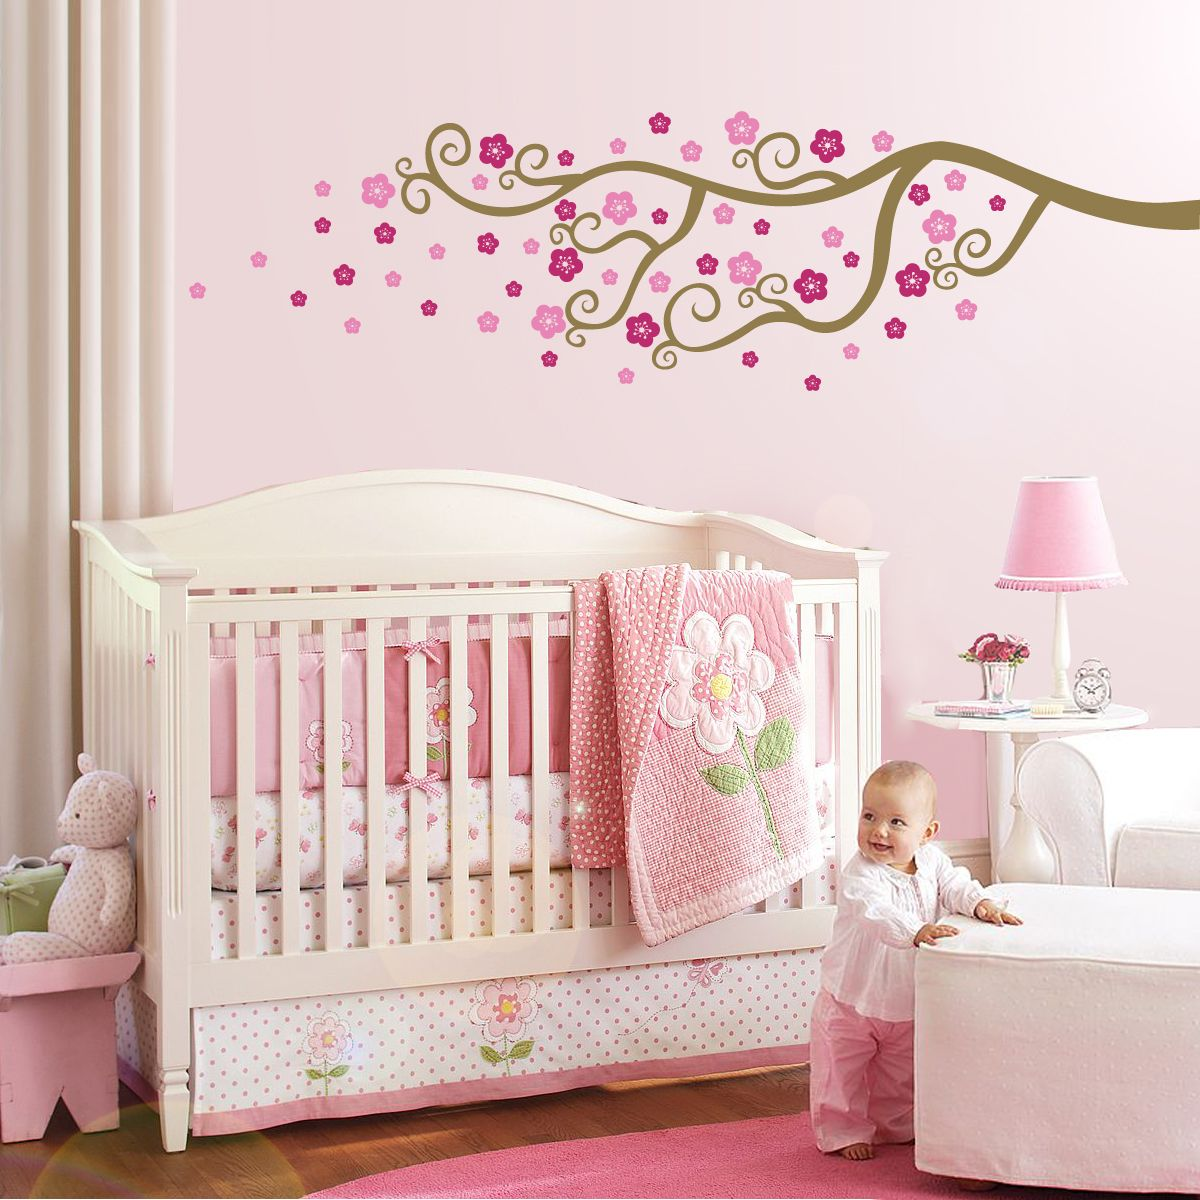 Creative paint ideas for kids bedroom captivating pink for Paint ideas for kids rooms